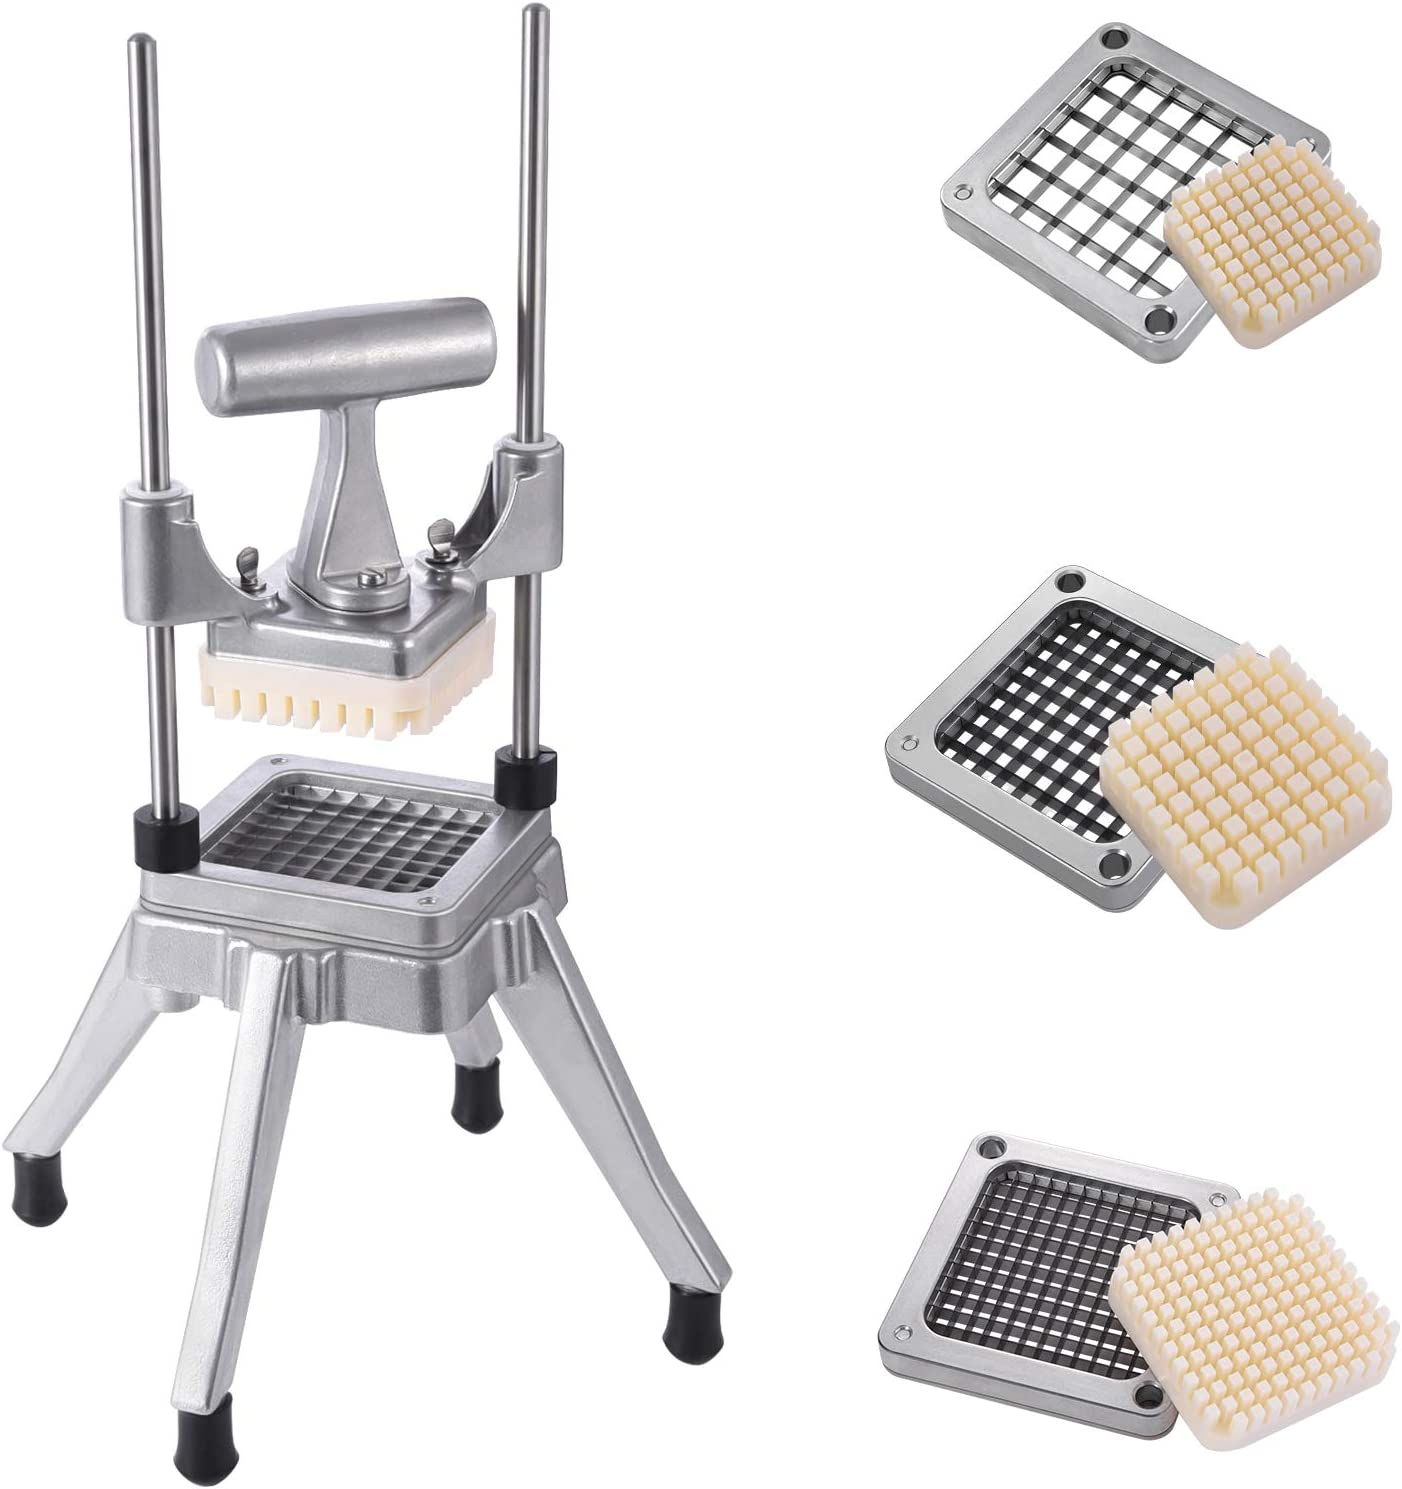 Frifer Commercial Vegetable Fruit Chopper French Fry Cutter with 3 Sizes Blades Heavy Duty Professional Food Dicer Stainless Steel Potato Chopper for Onion Peppers Mushrooms